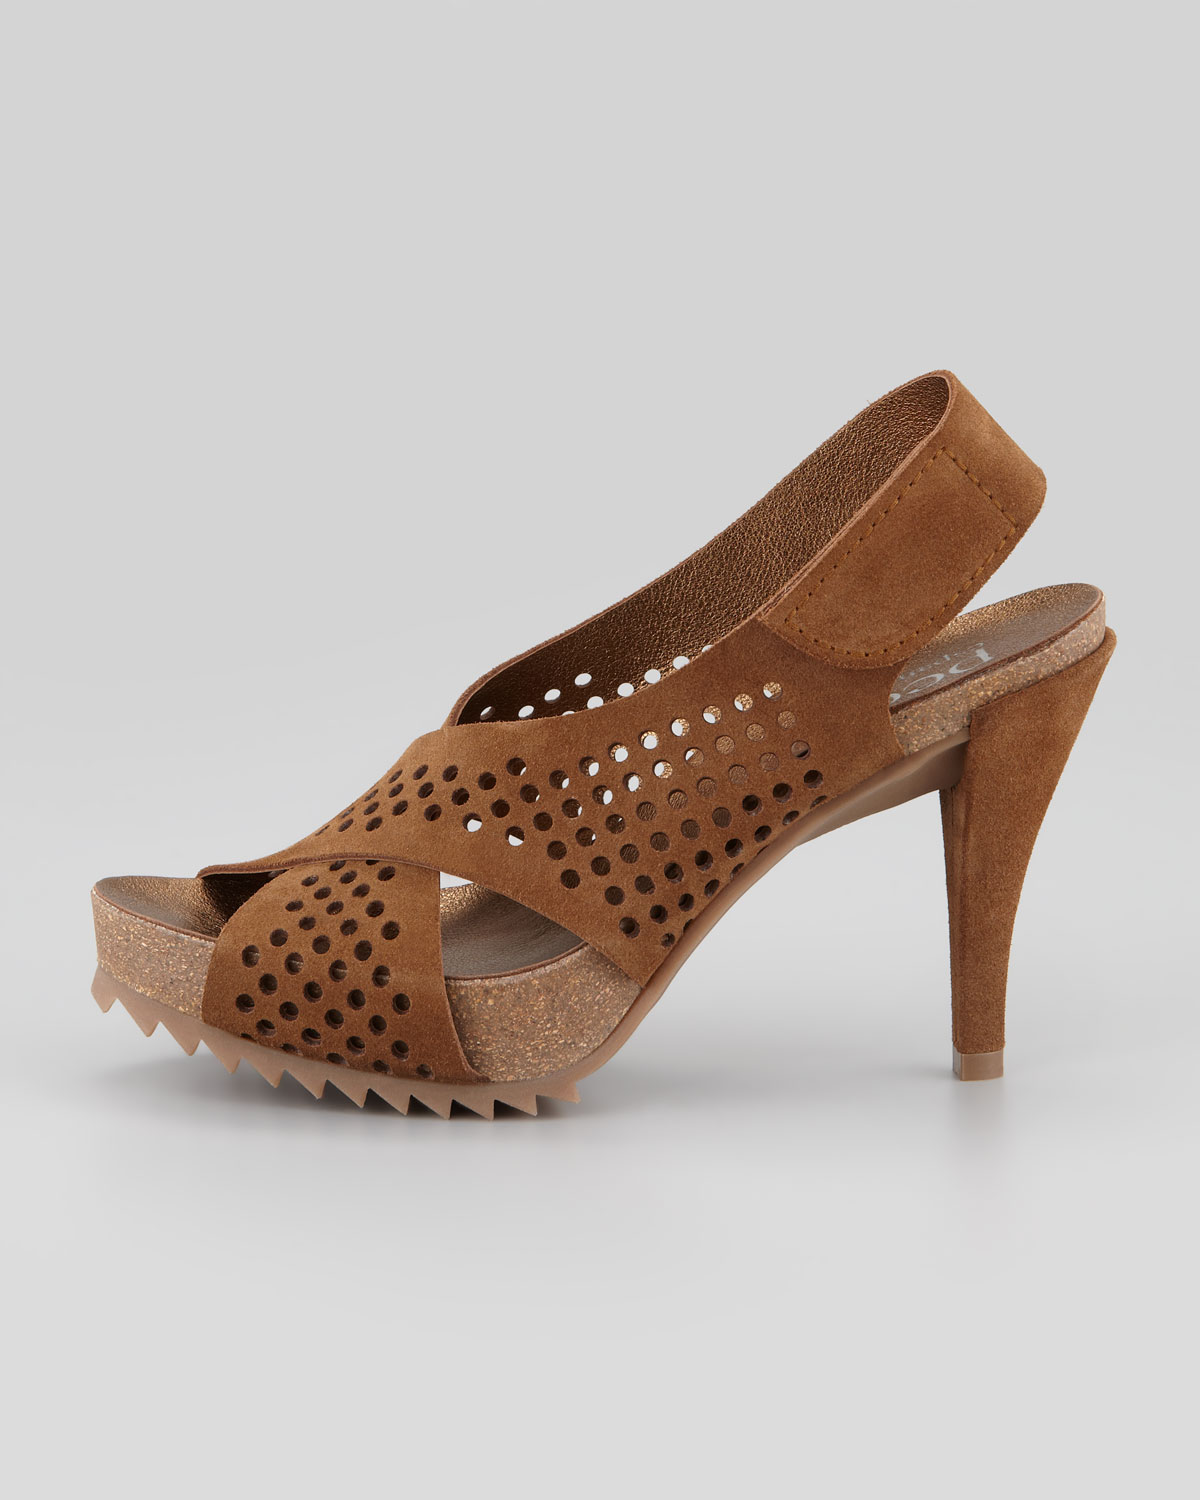 Pedro Garcia Suede Peep-Toe Sandals low price online clearance big discount buy cheap perfect fashion Style cheap online 100% original online BhGH3